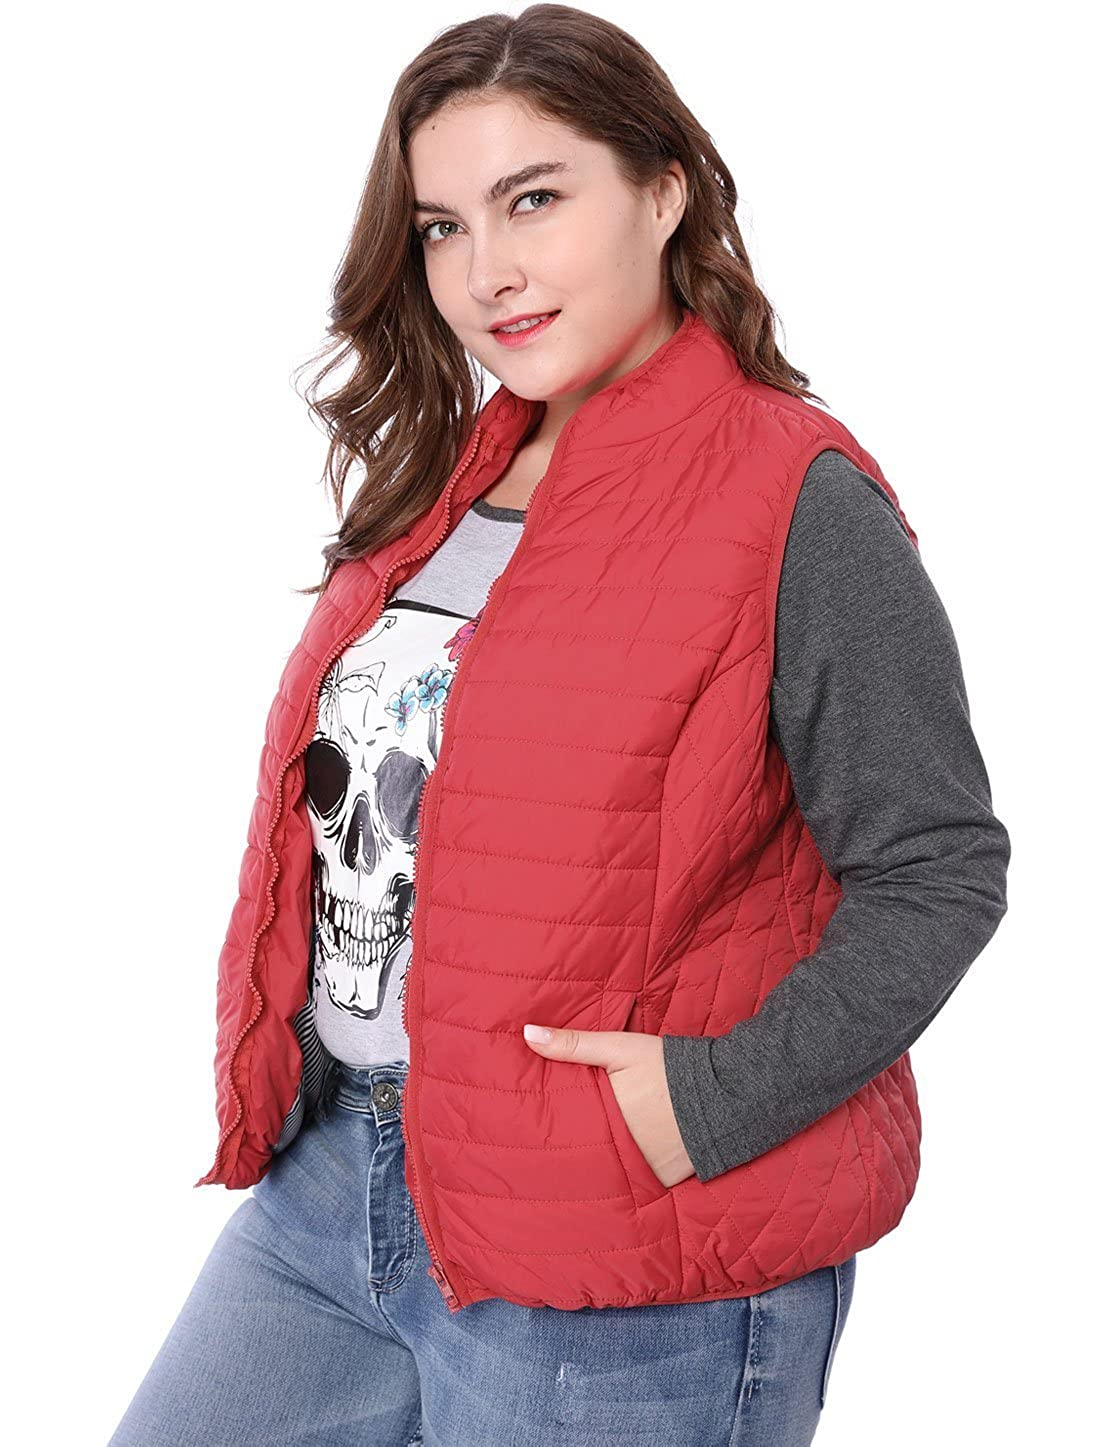 Agnes Orinda Women's Plus Size Stand Collar Quilted Padded Zip Vest